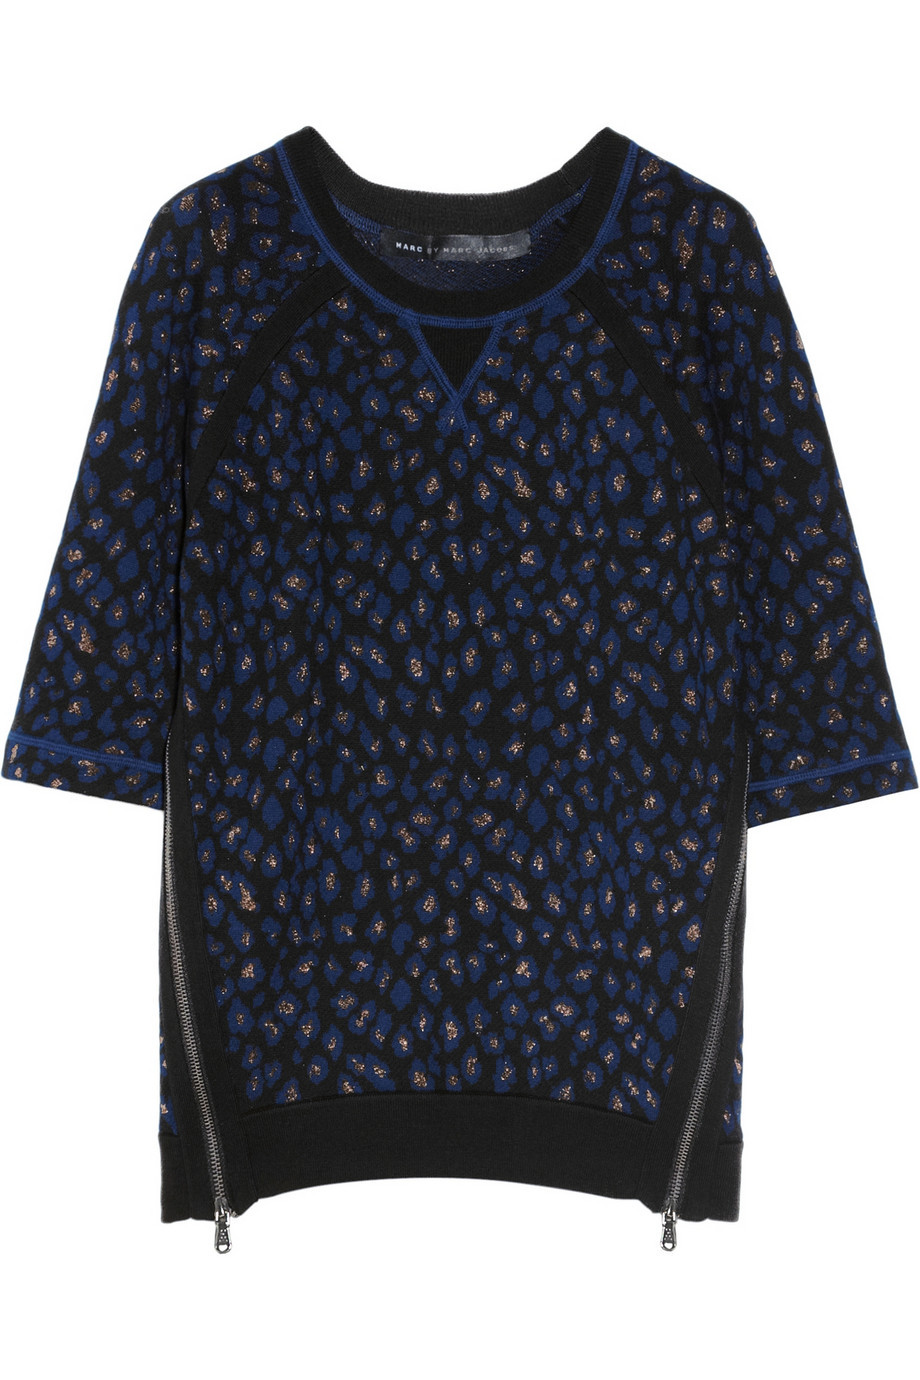 Marc by Marc Jacobs   Sasha leopard-patterned cotton-blend sweater   NET-A-PORTER.COM_files.jpg